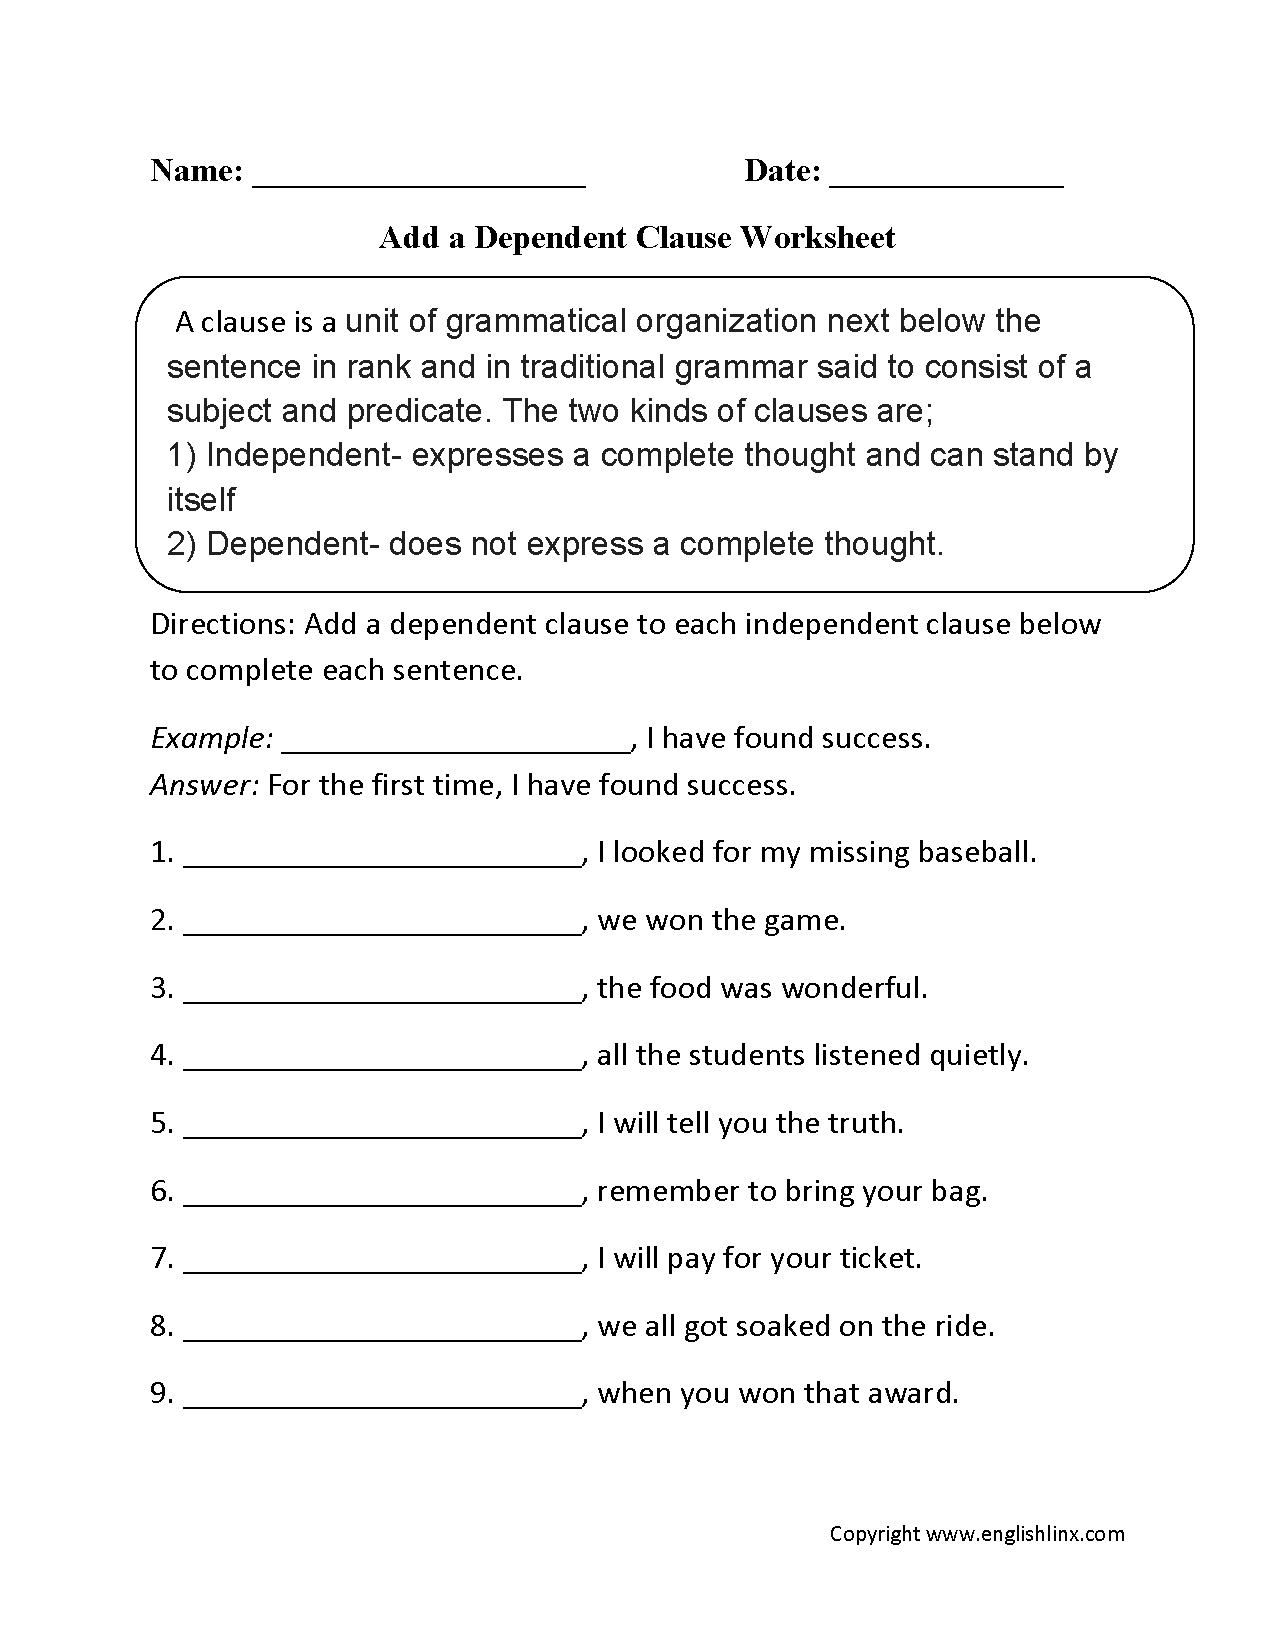 Grammar Worksheets – Grammar Worksheets